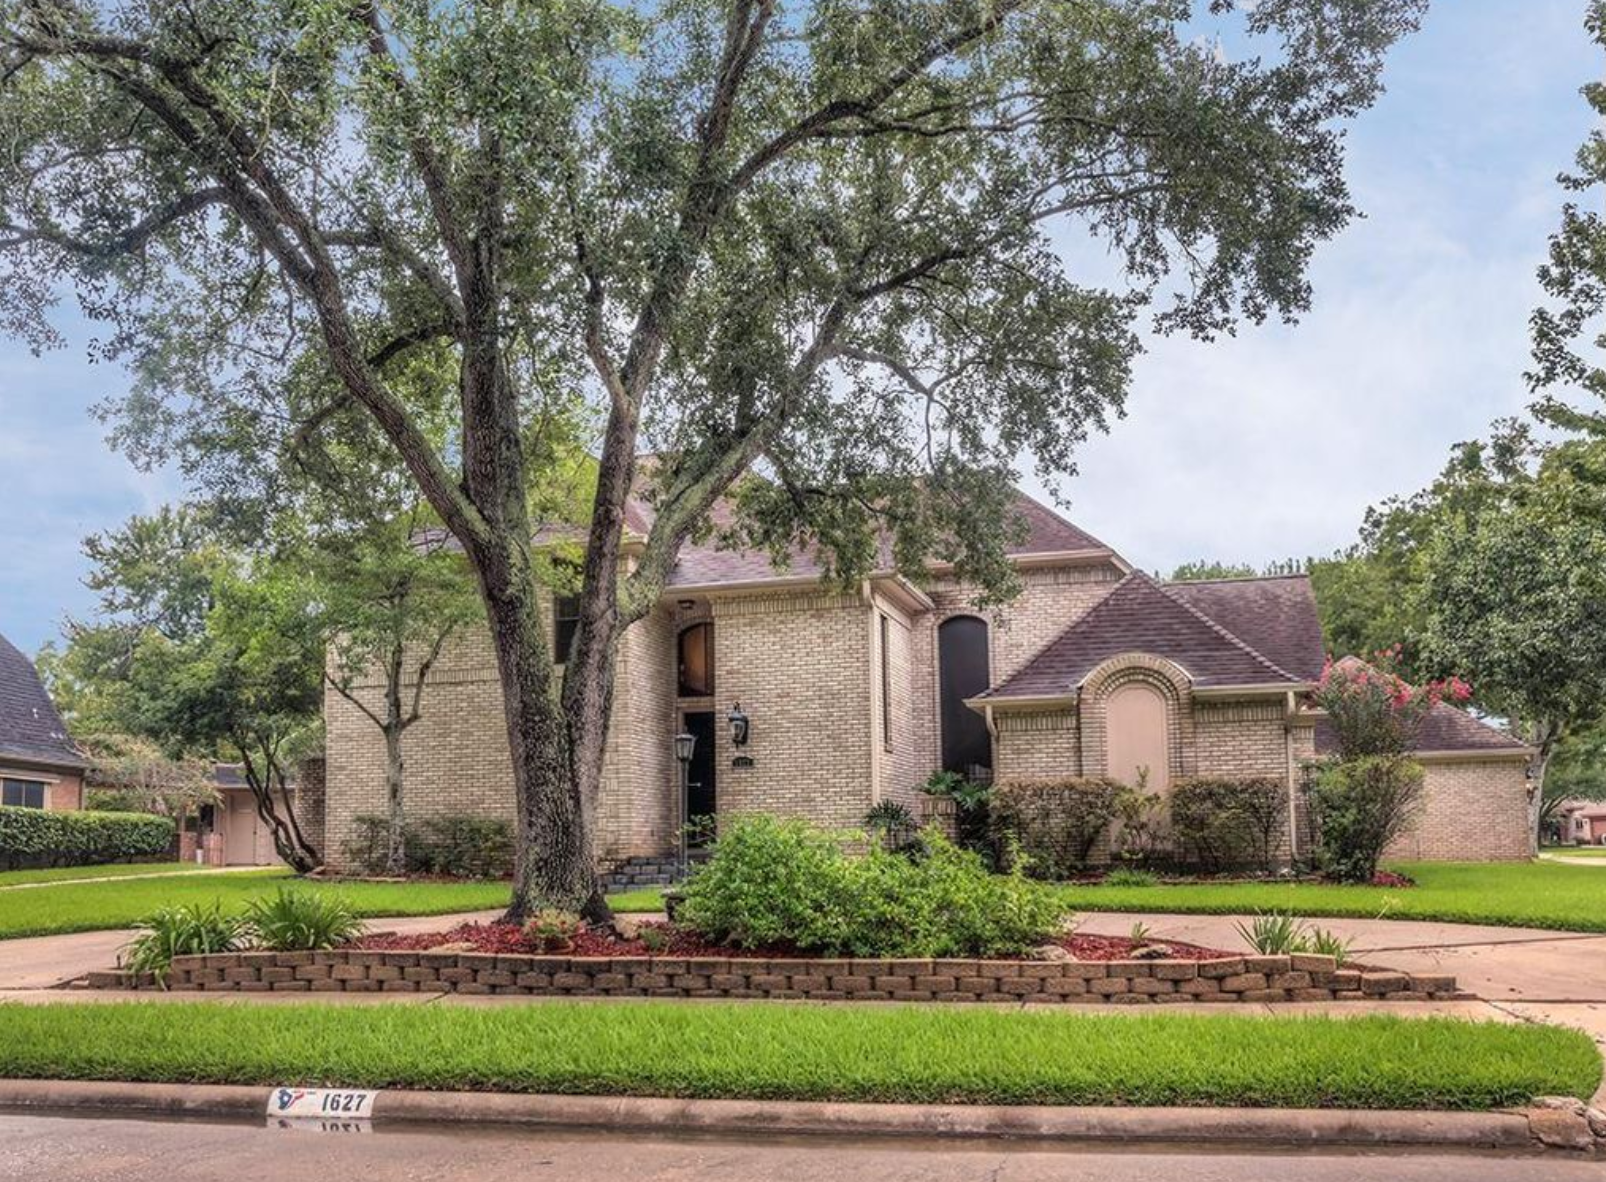 Richmond, Texas (Houston-The Woodlands-Sugar Land, TX); list price: $299,900; square footage: 2,850; beds/baths: 4/2.5